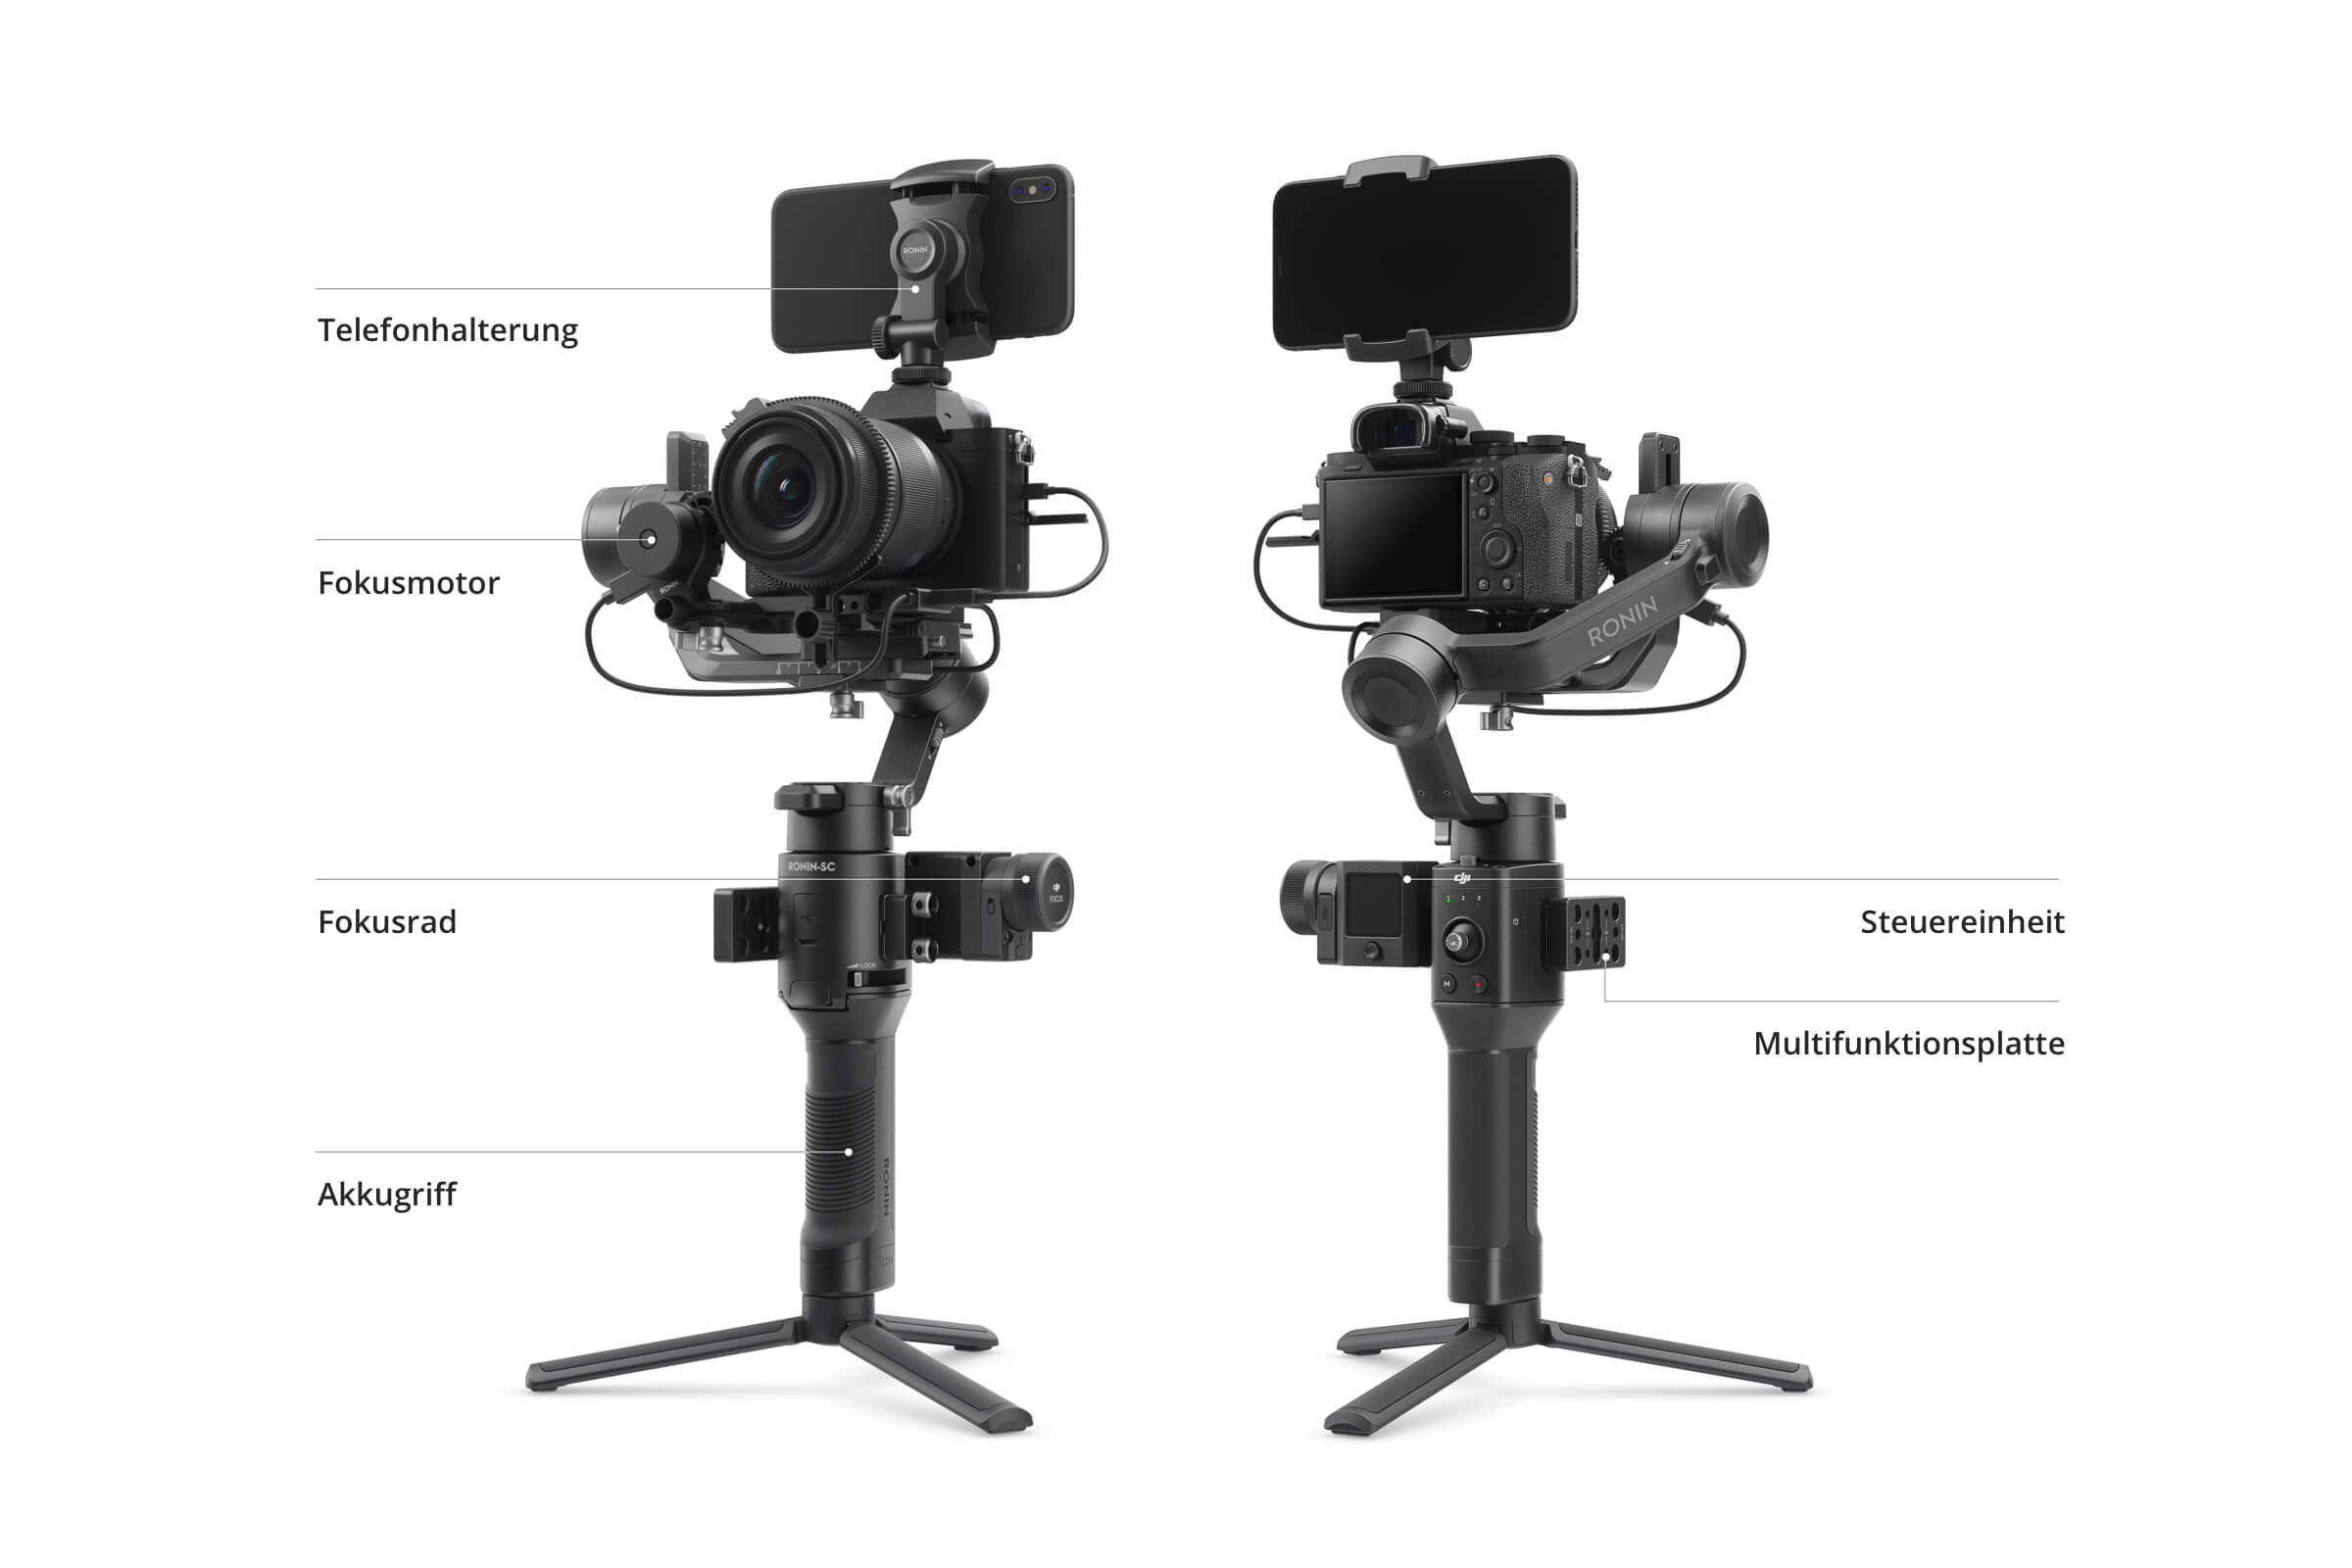 DJI introduces lightweight Ronin-SC (Compact) one-hand gimbal for mirrorless cameras up to 2 kg